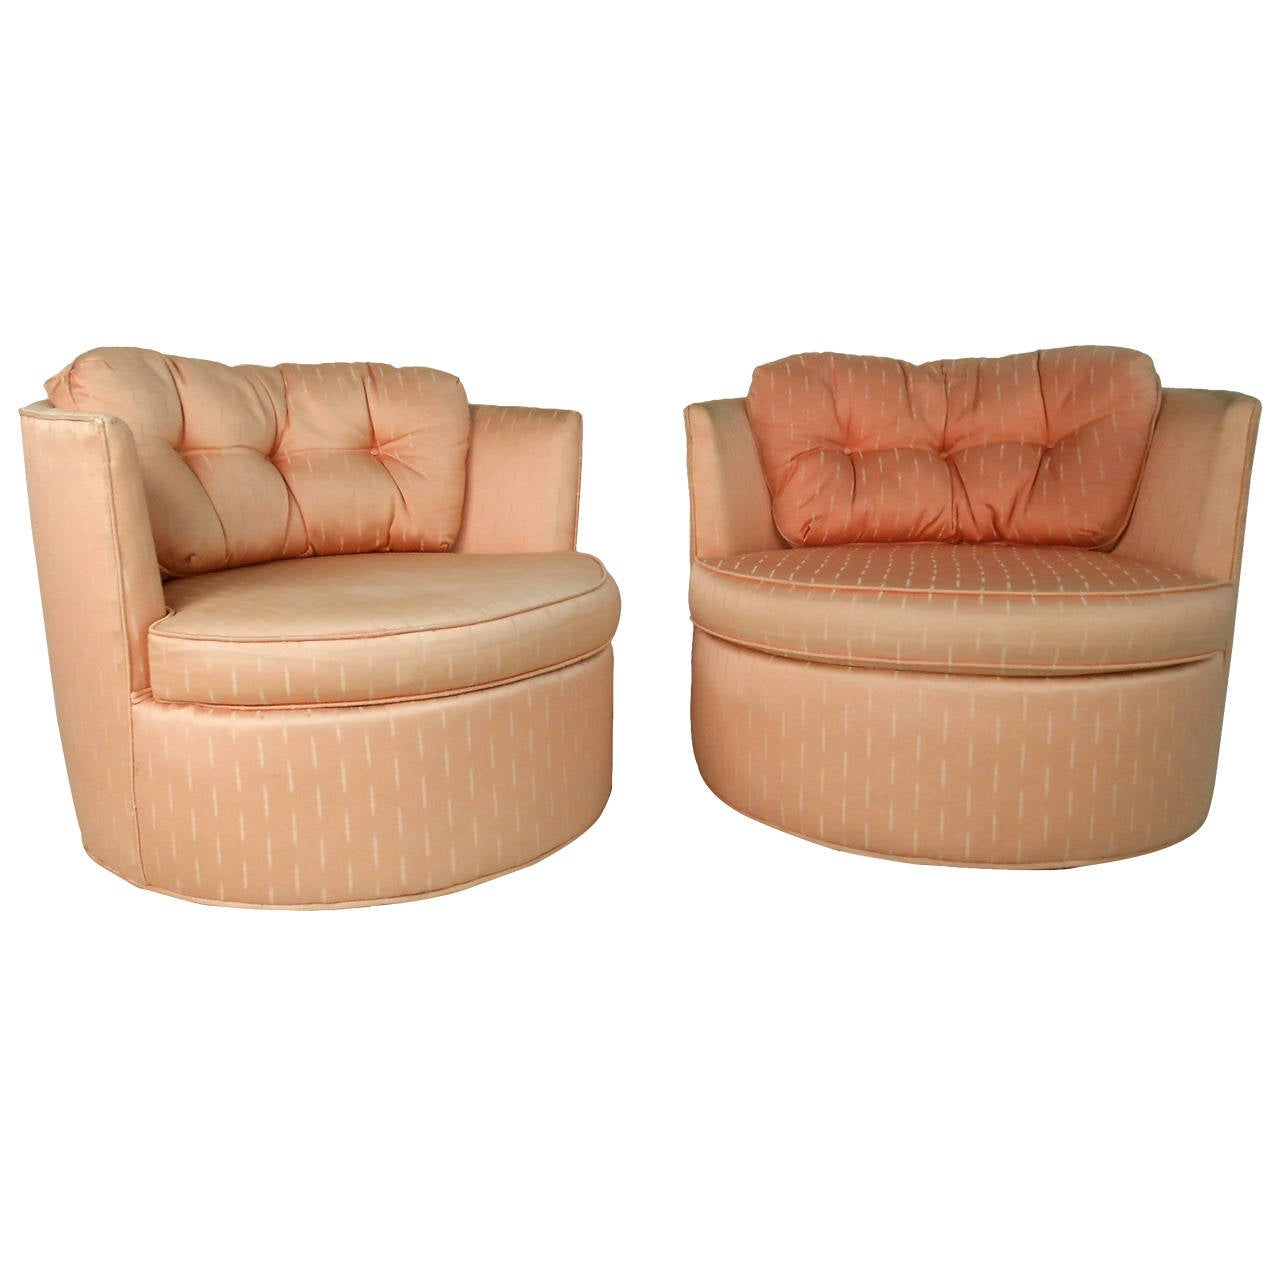 Pair unique mid century modern barrel back swivel chairs at 1stdibs